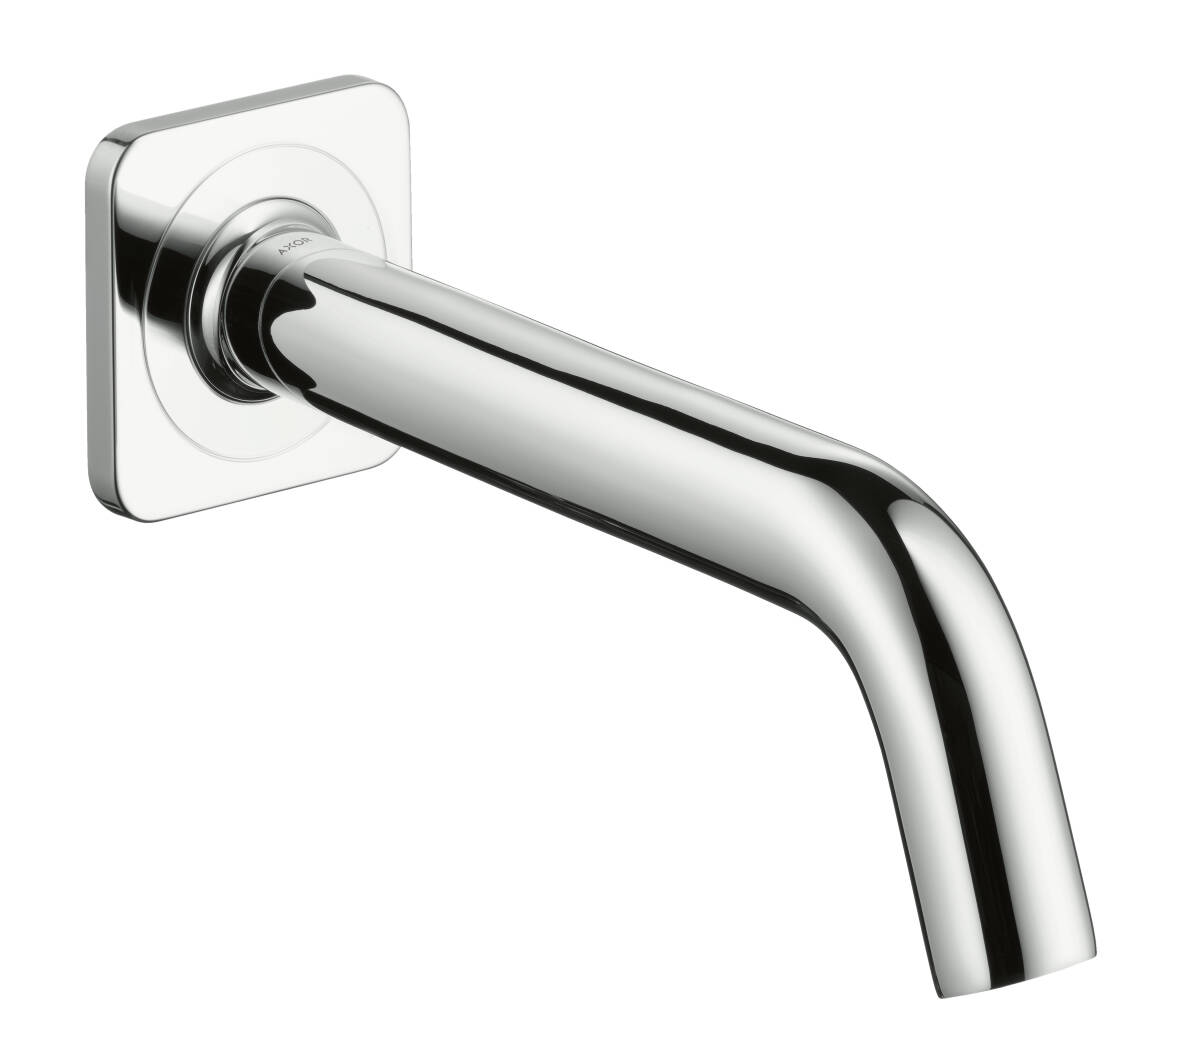 Bath spout, Polished Red Gold, 34410300